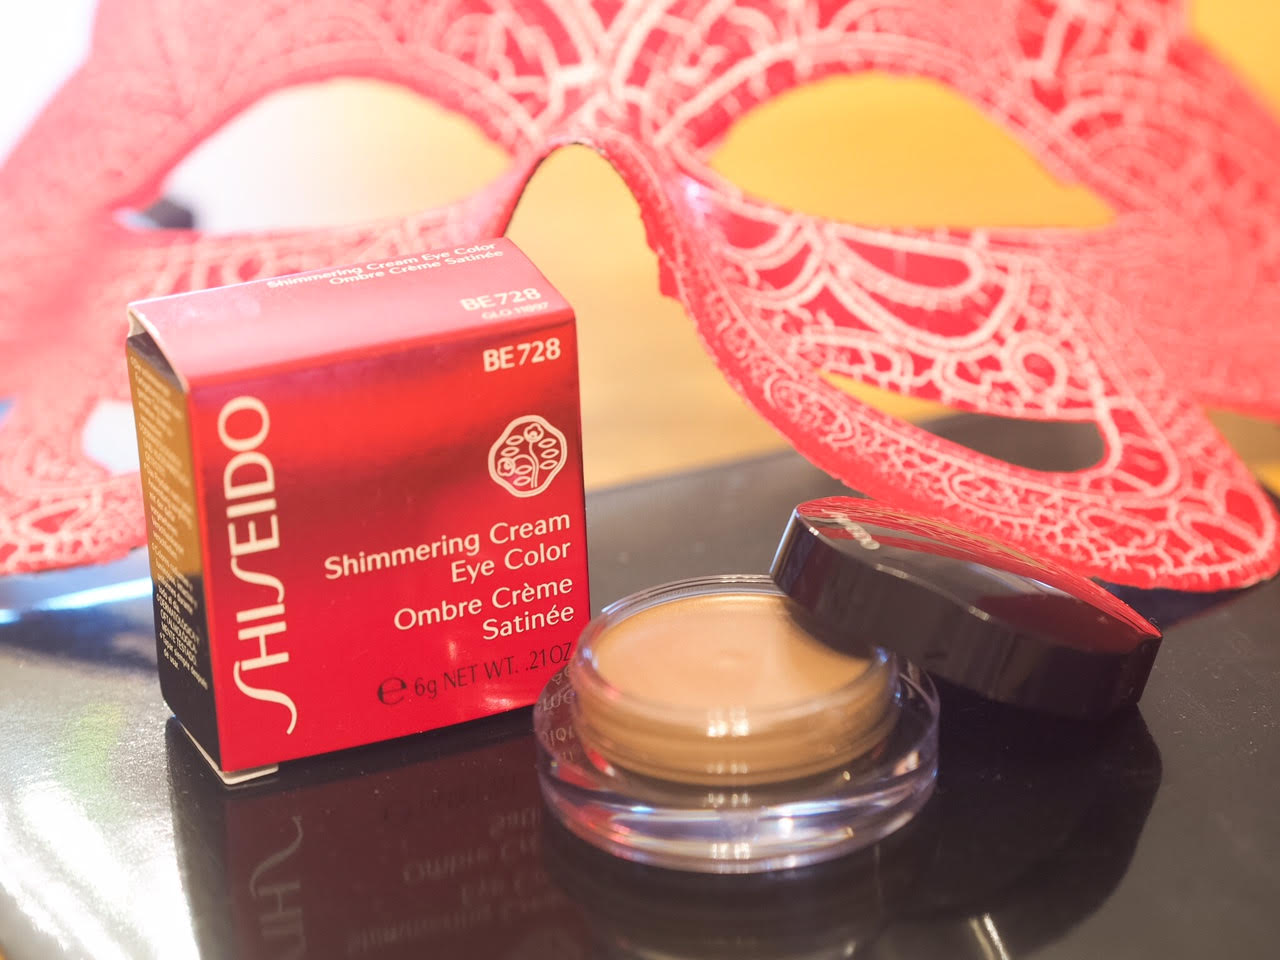 Shiseido eye cream shadow